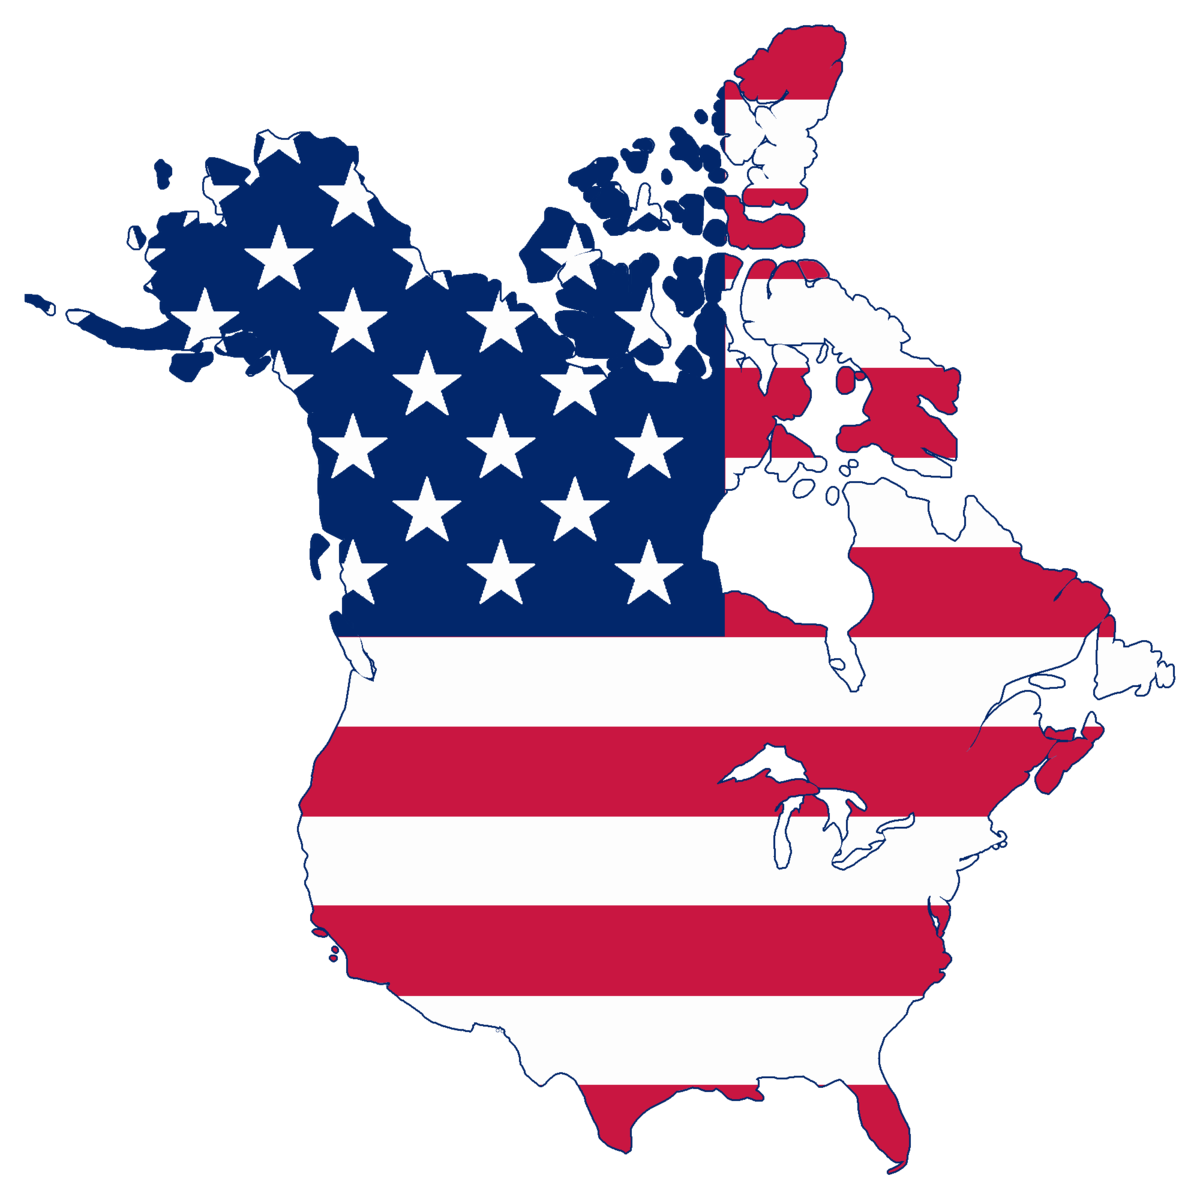 Canada And Usa Flag Map File:Flag map of Canada and United States (American Flag).png